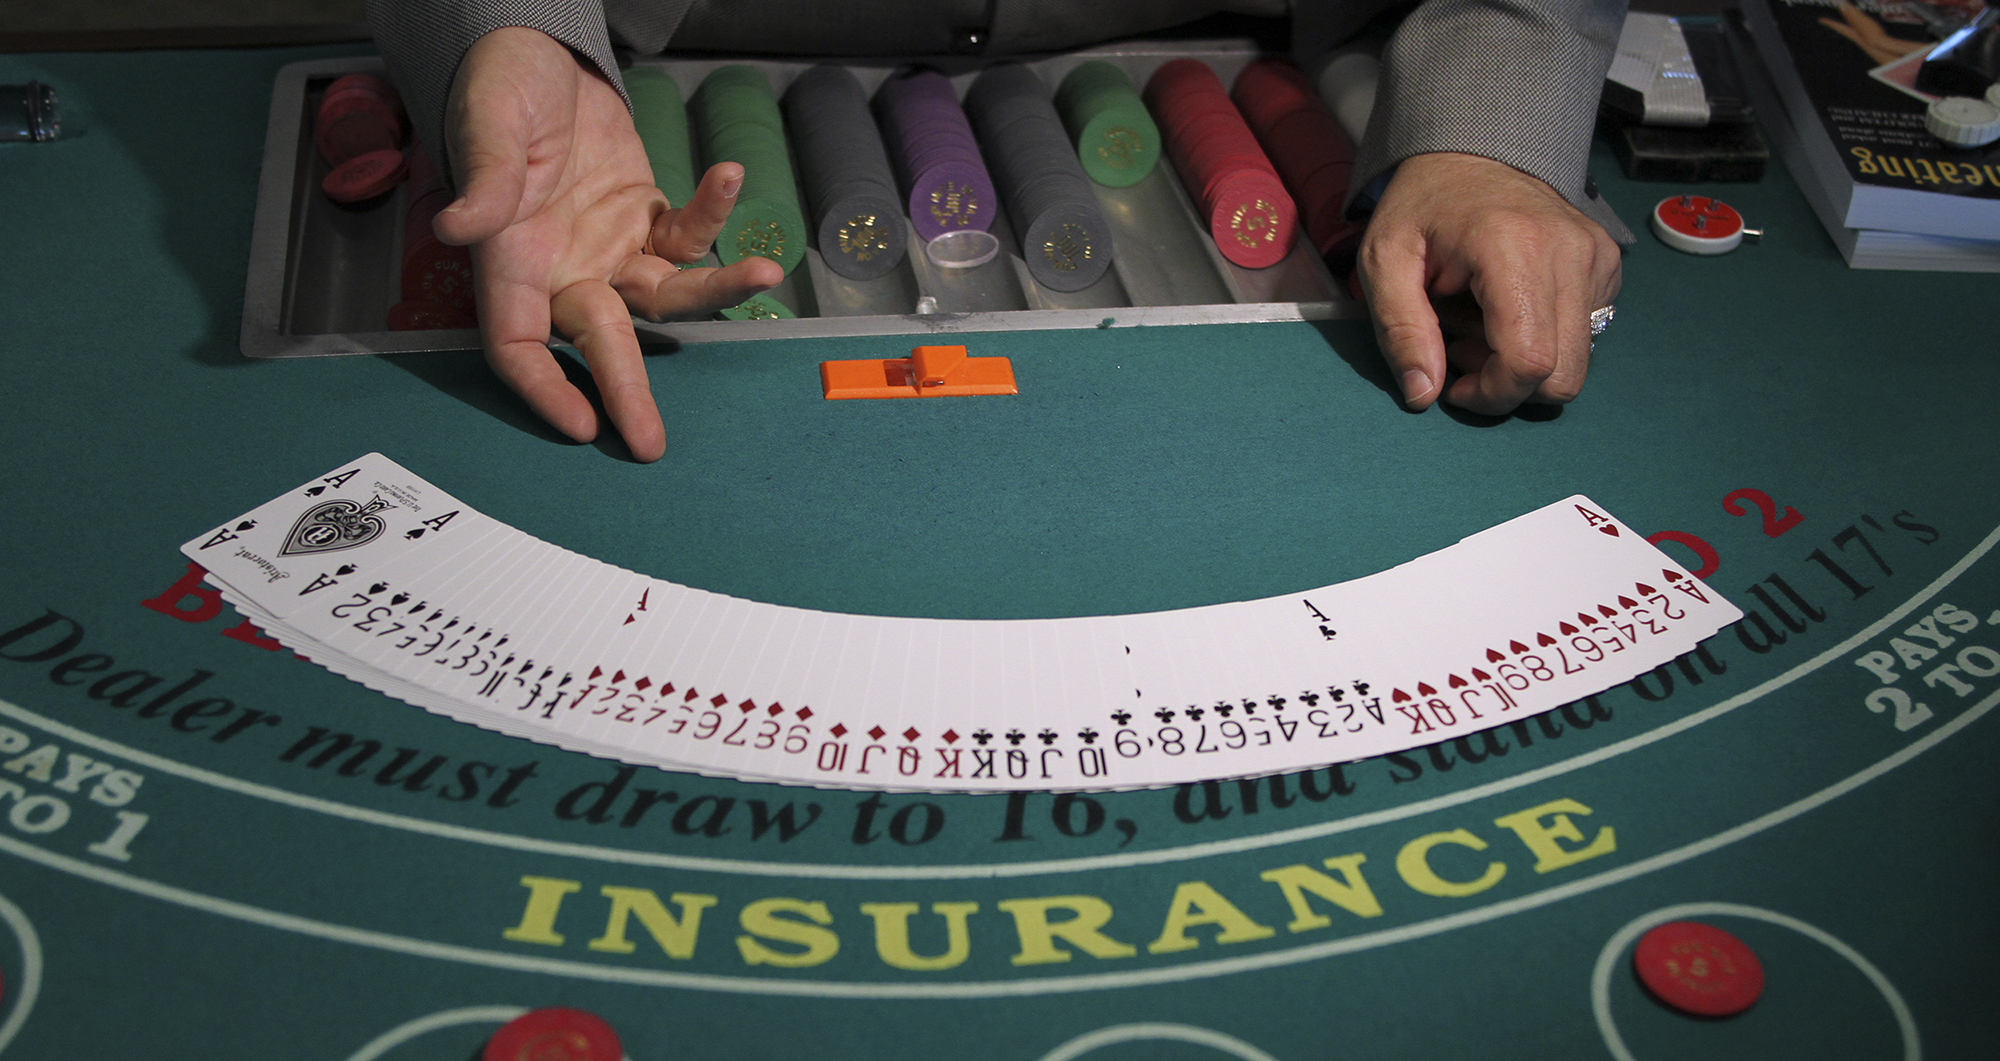 george-joseph-worldwide-casino-consulting-fraud-protection-carddeck-about.jpg